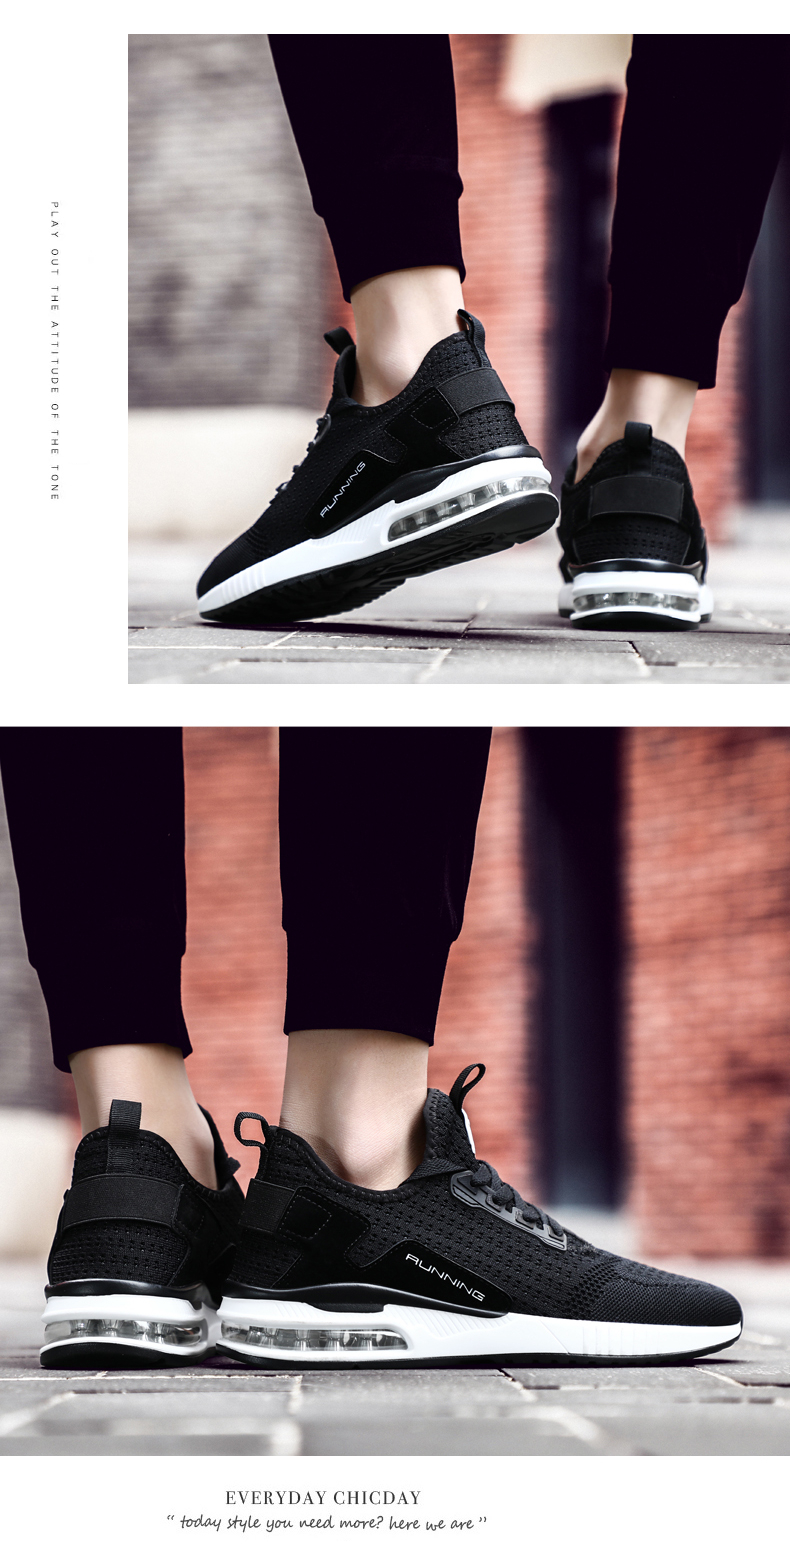 HTB12XMfbffsK1RjSszgq6yXzpXaL Hemmyi Couple Sneakers Shoes Mesh Breathable Chaussure Homme Spring/Autumn Men Shoes Air Cushion Size 36-45 Support Dropshipping